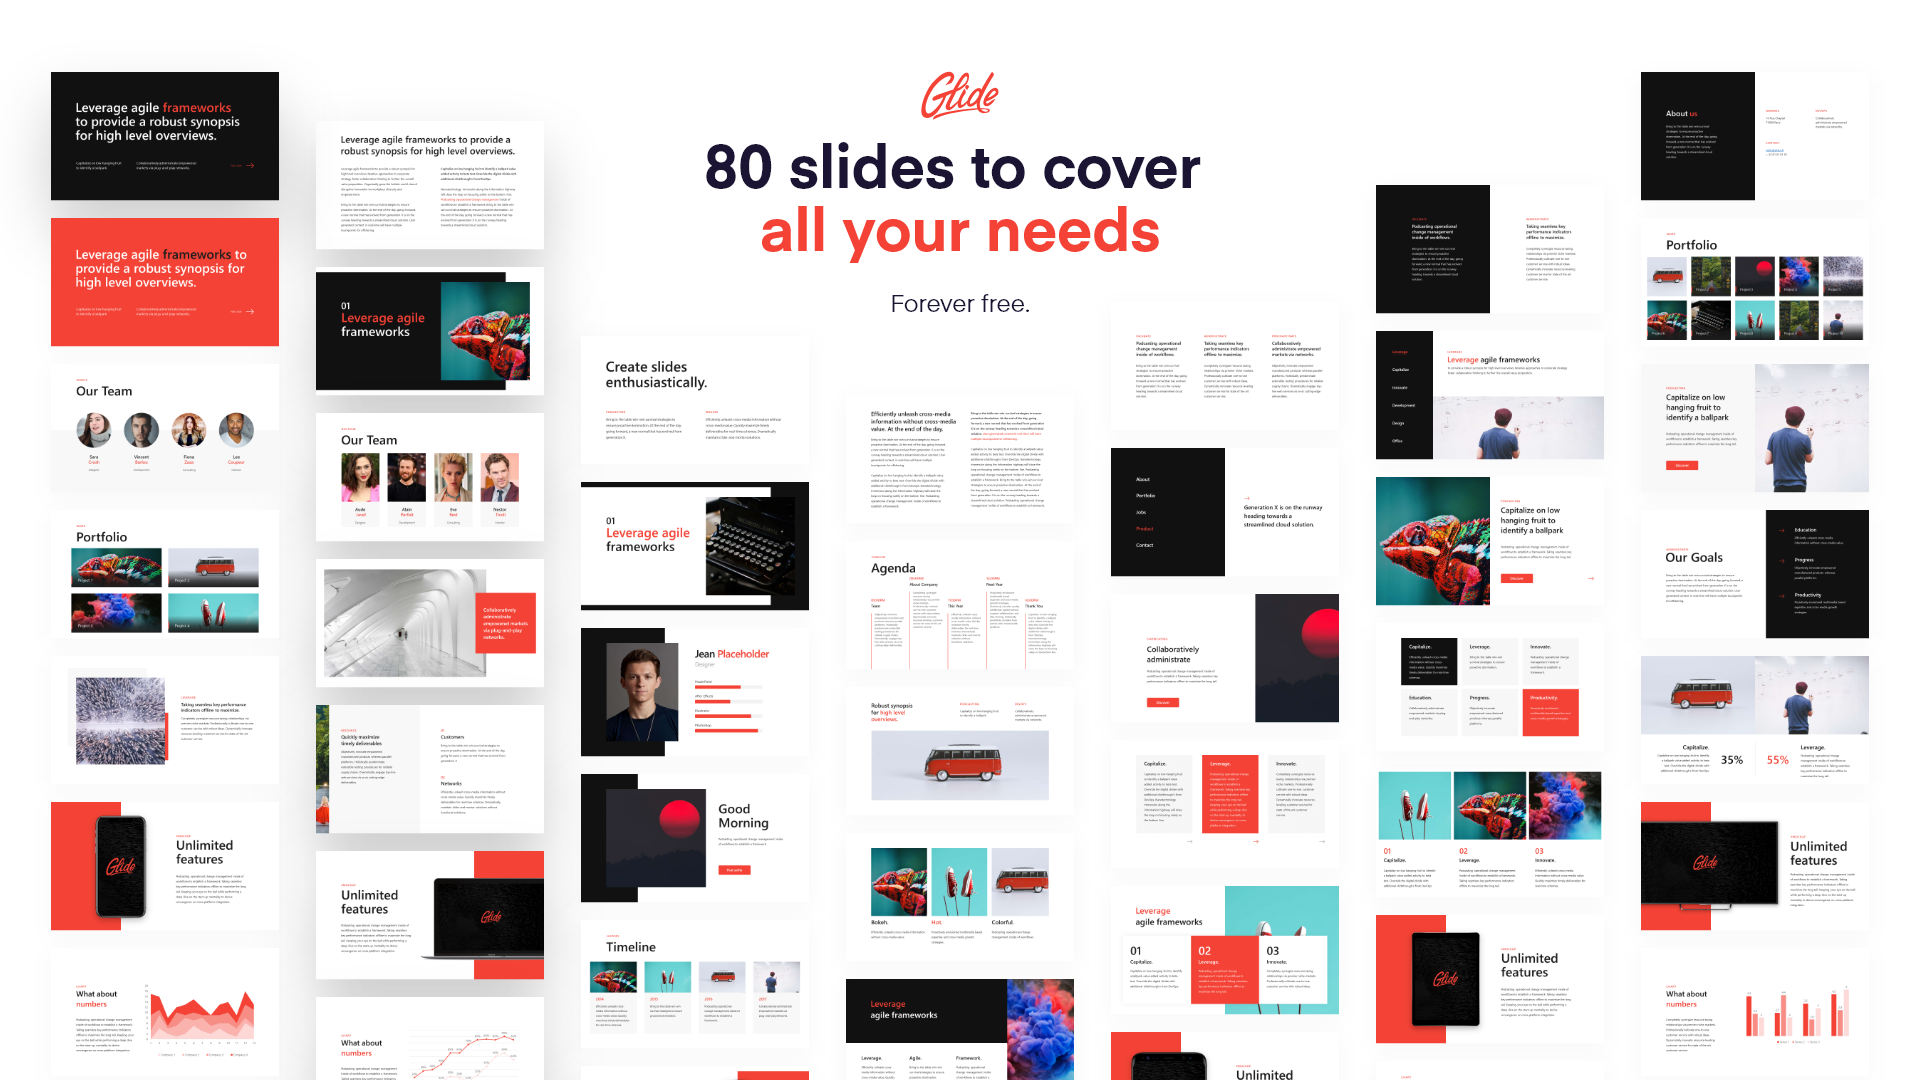 Glide Une Collection De Plus De 80 Templates Powerpoint Gratuits